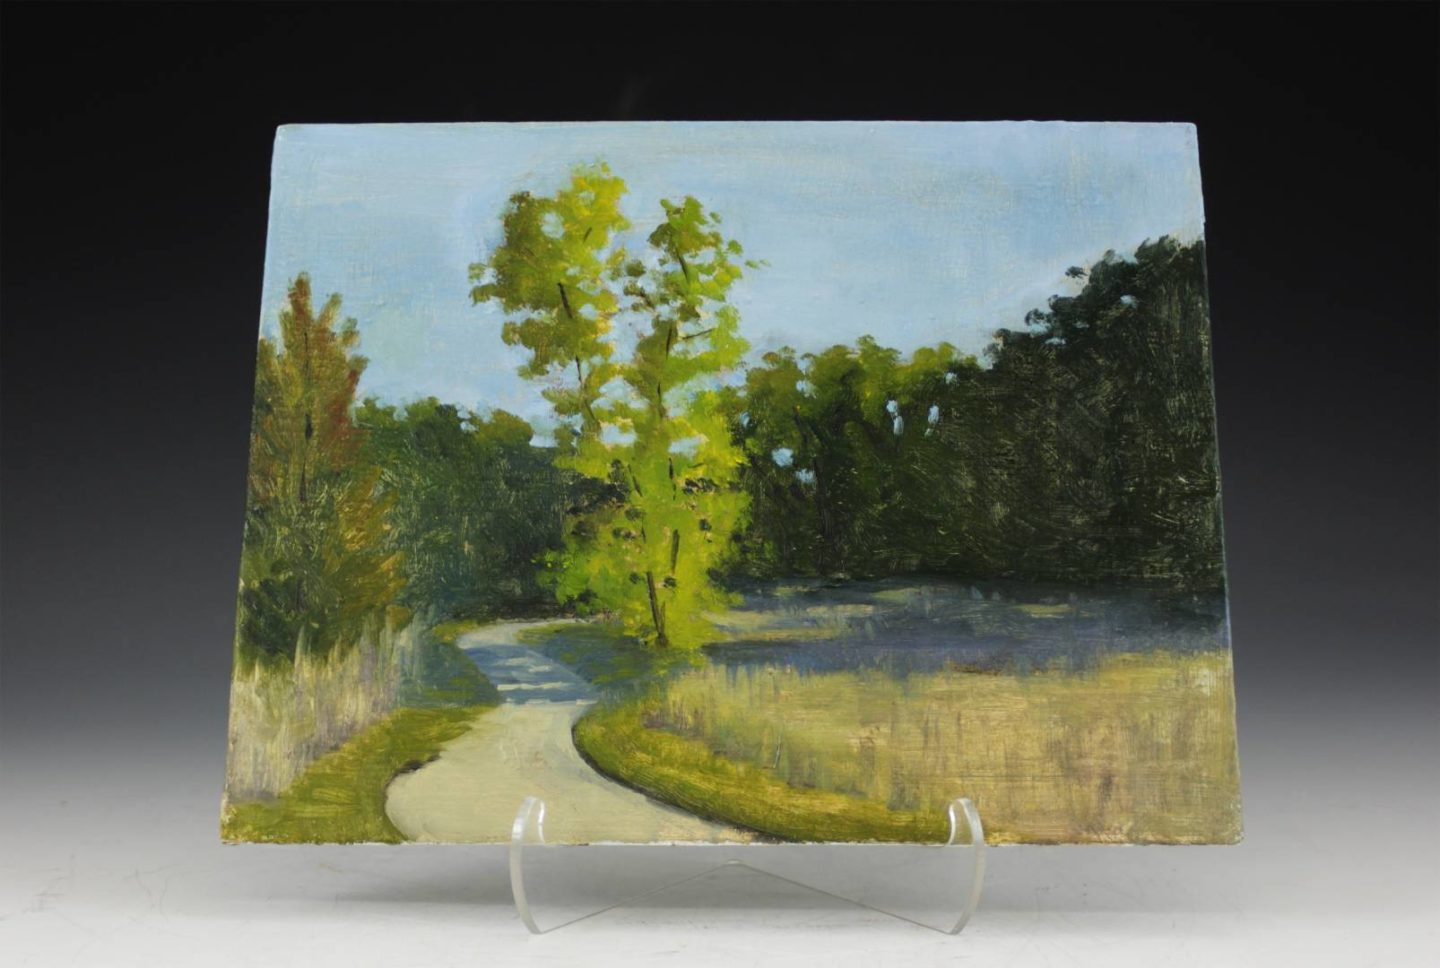 A scene showing the long shadows on a path on a long summer afternoon.